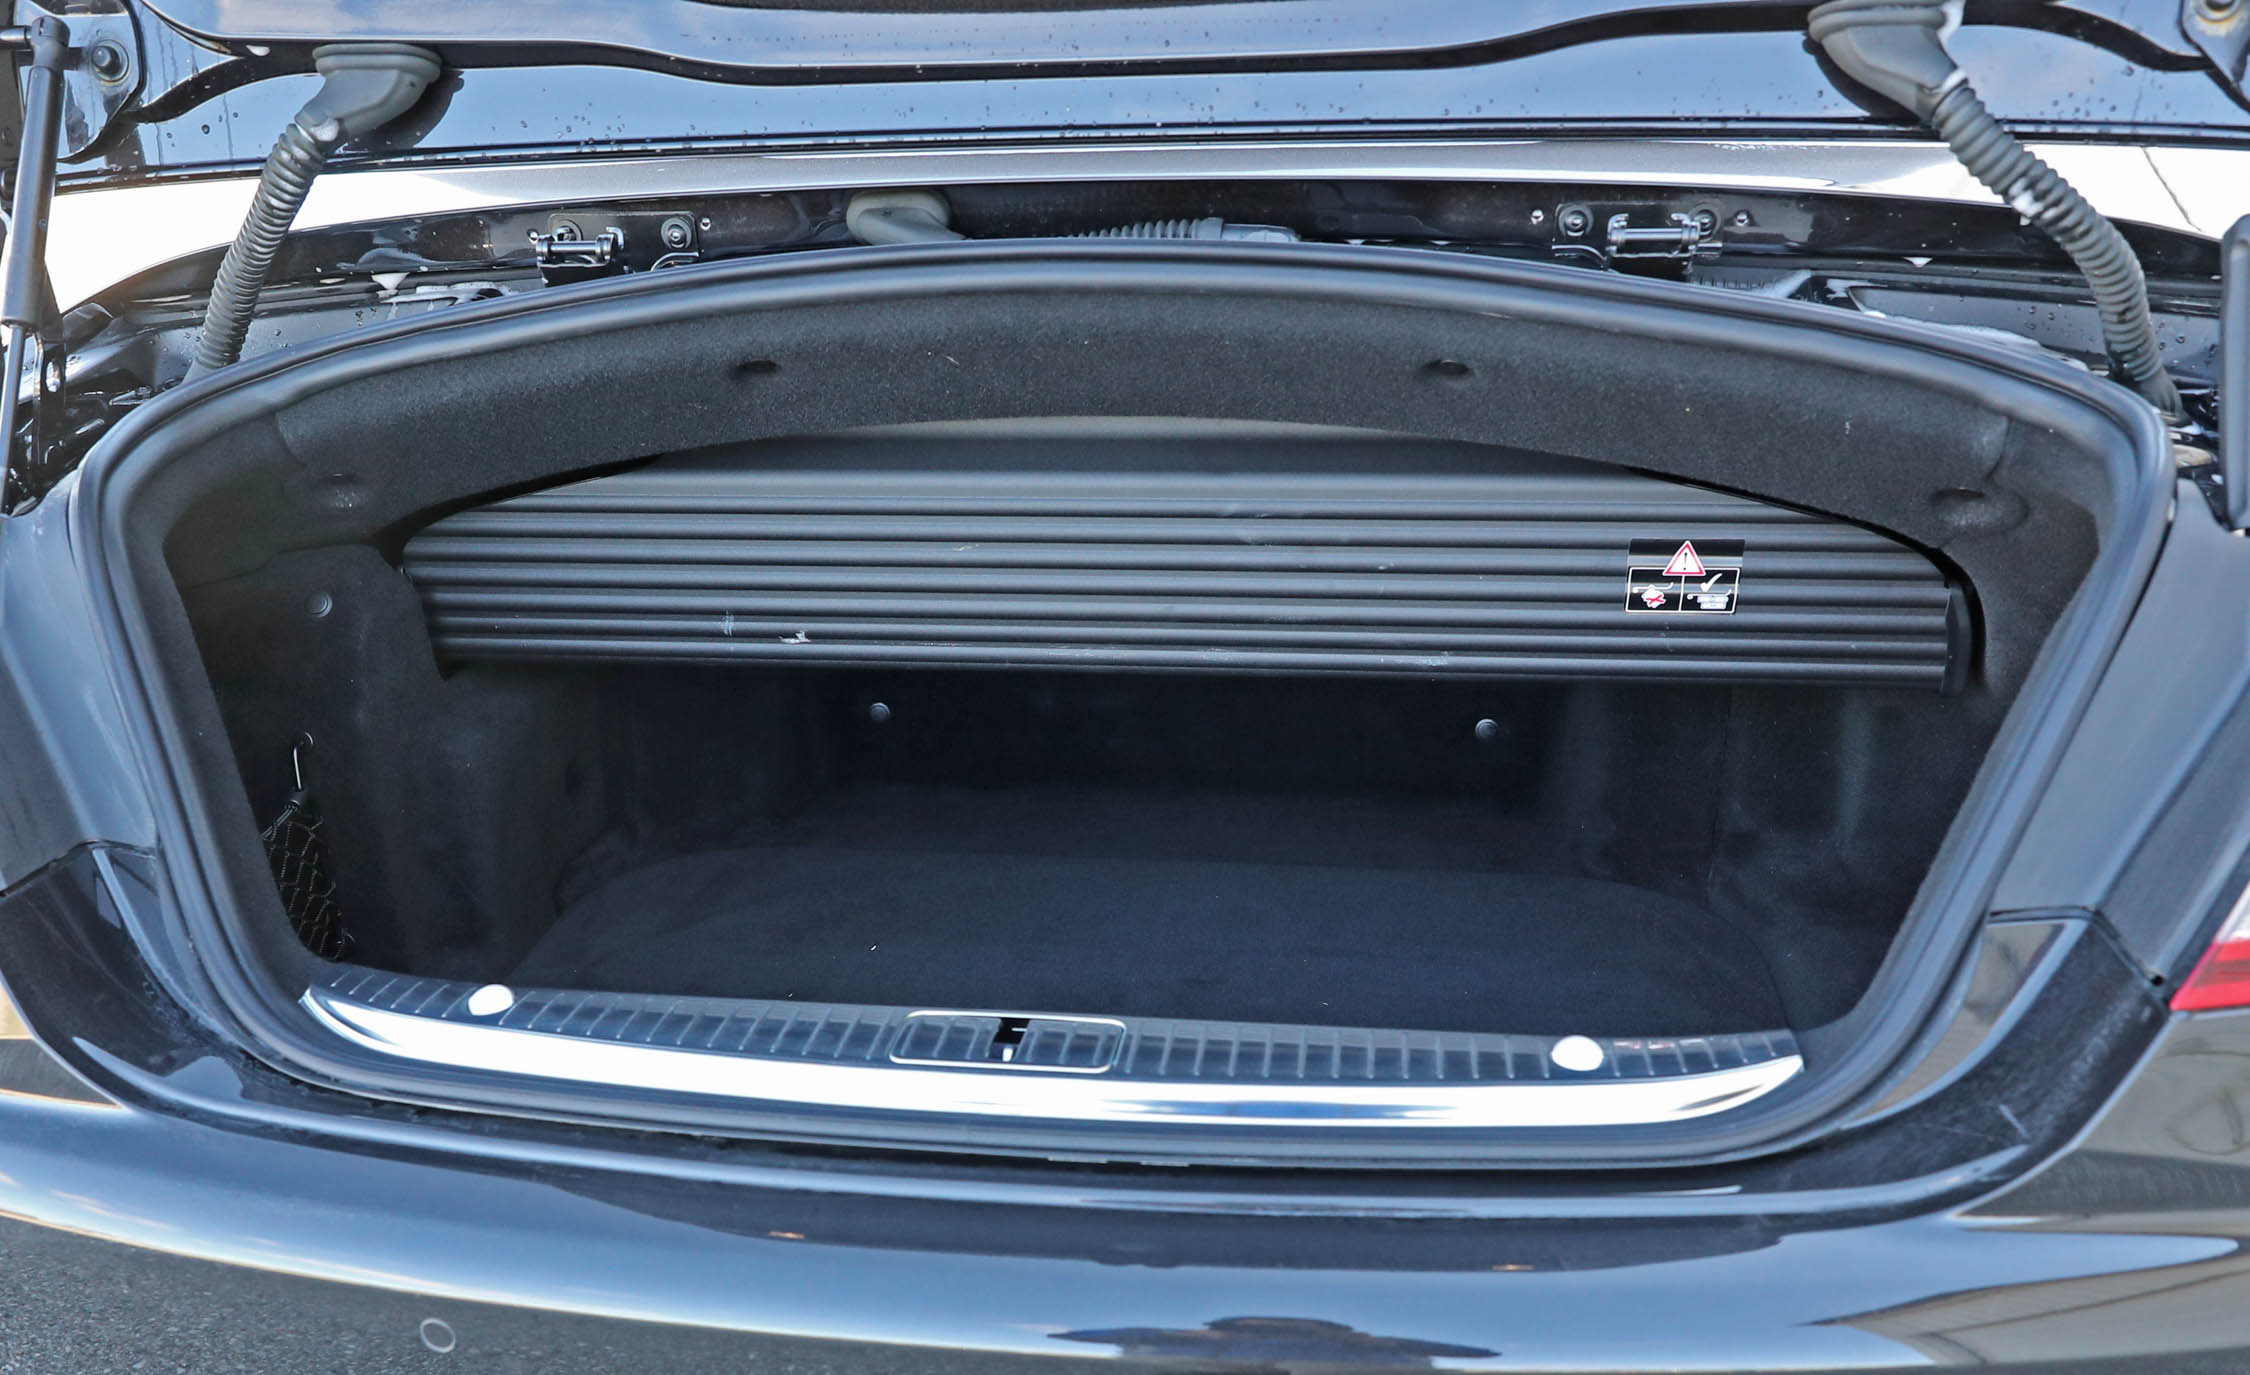 2017 Mercedes Amg S63 Cabriolet Interior View Cargo Trunk (Photo 21 of 38)